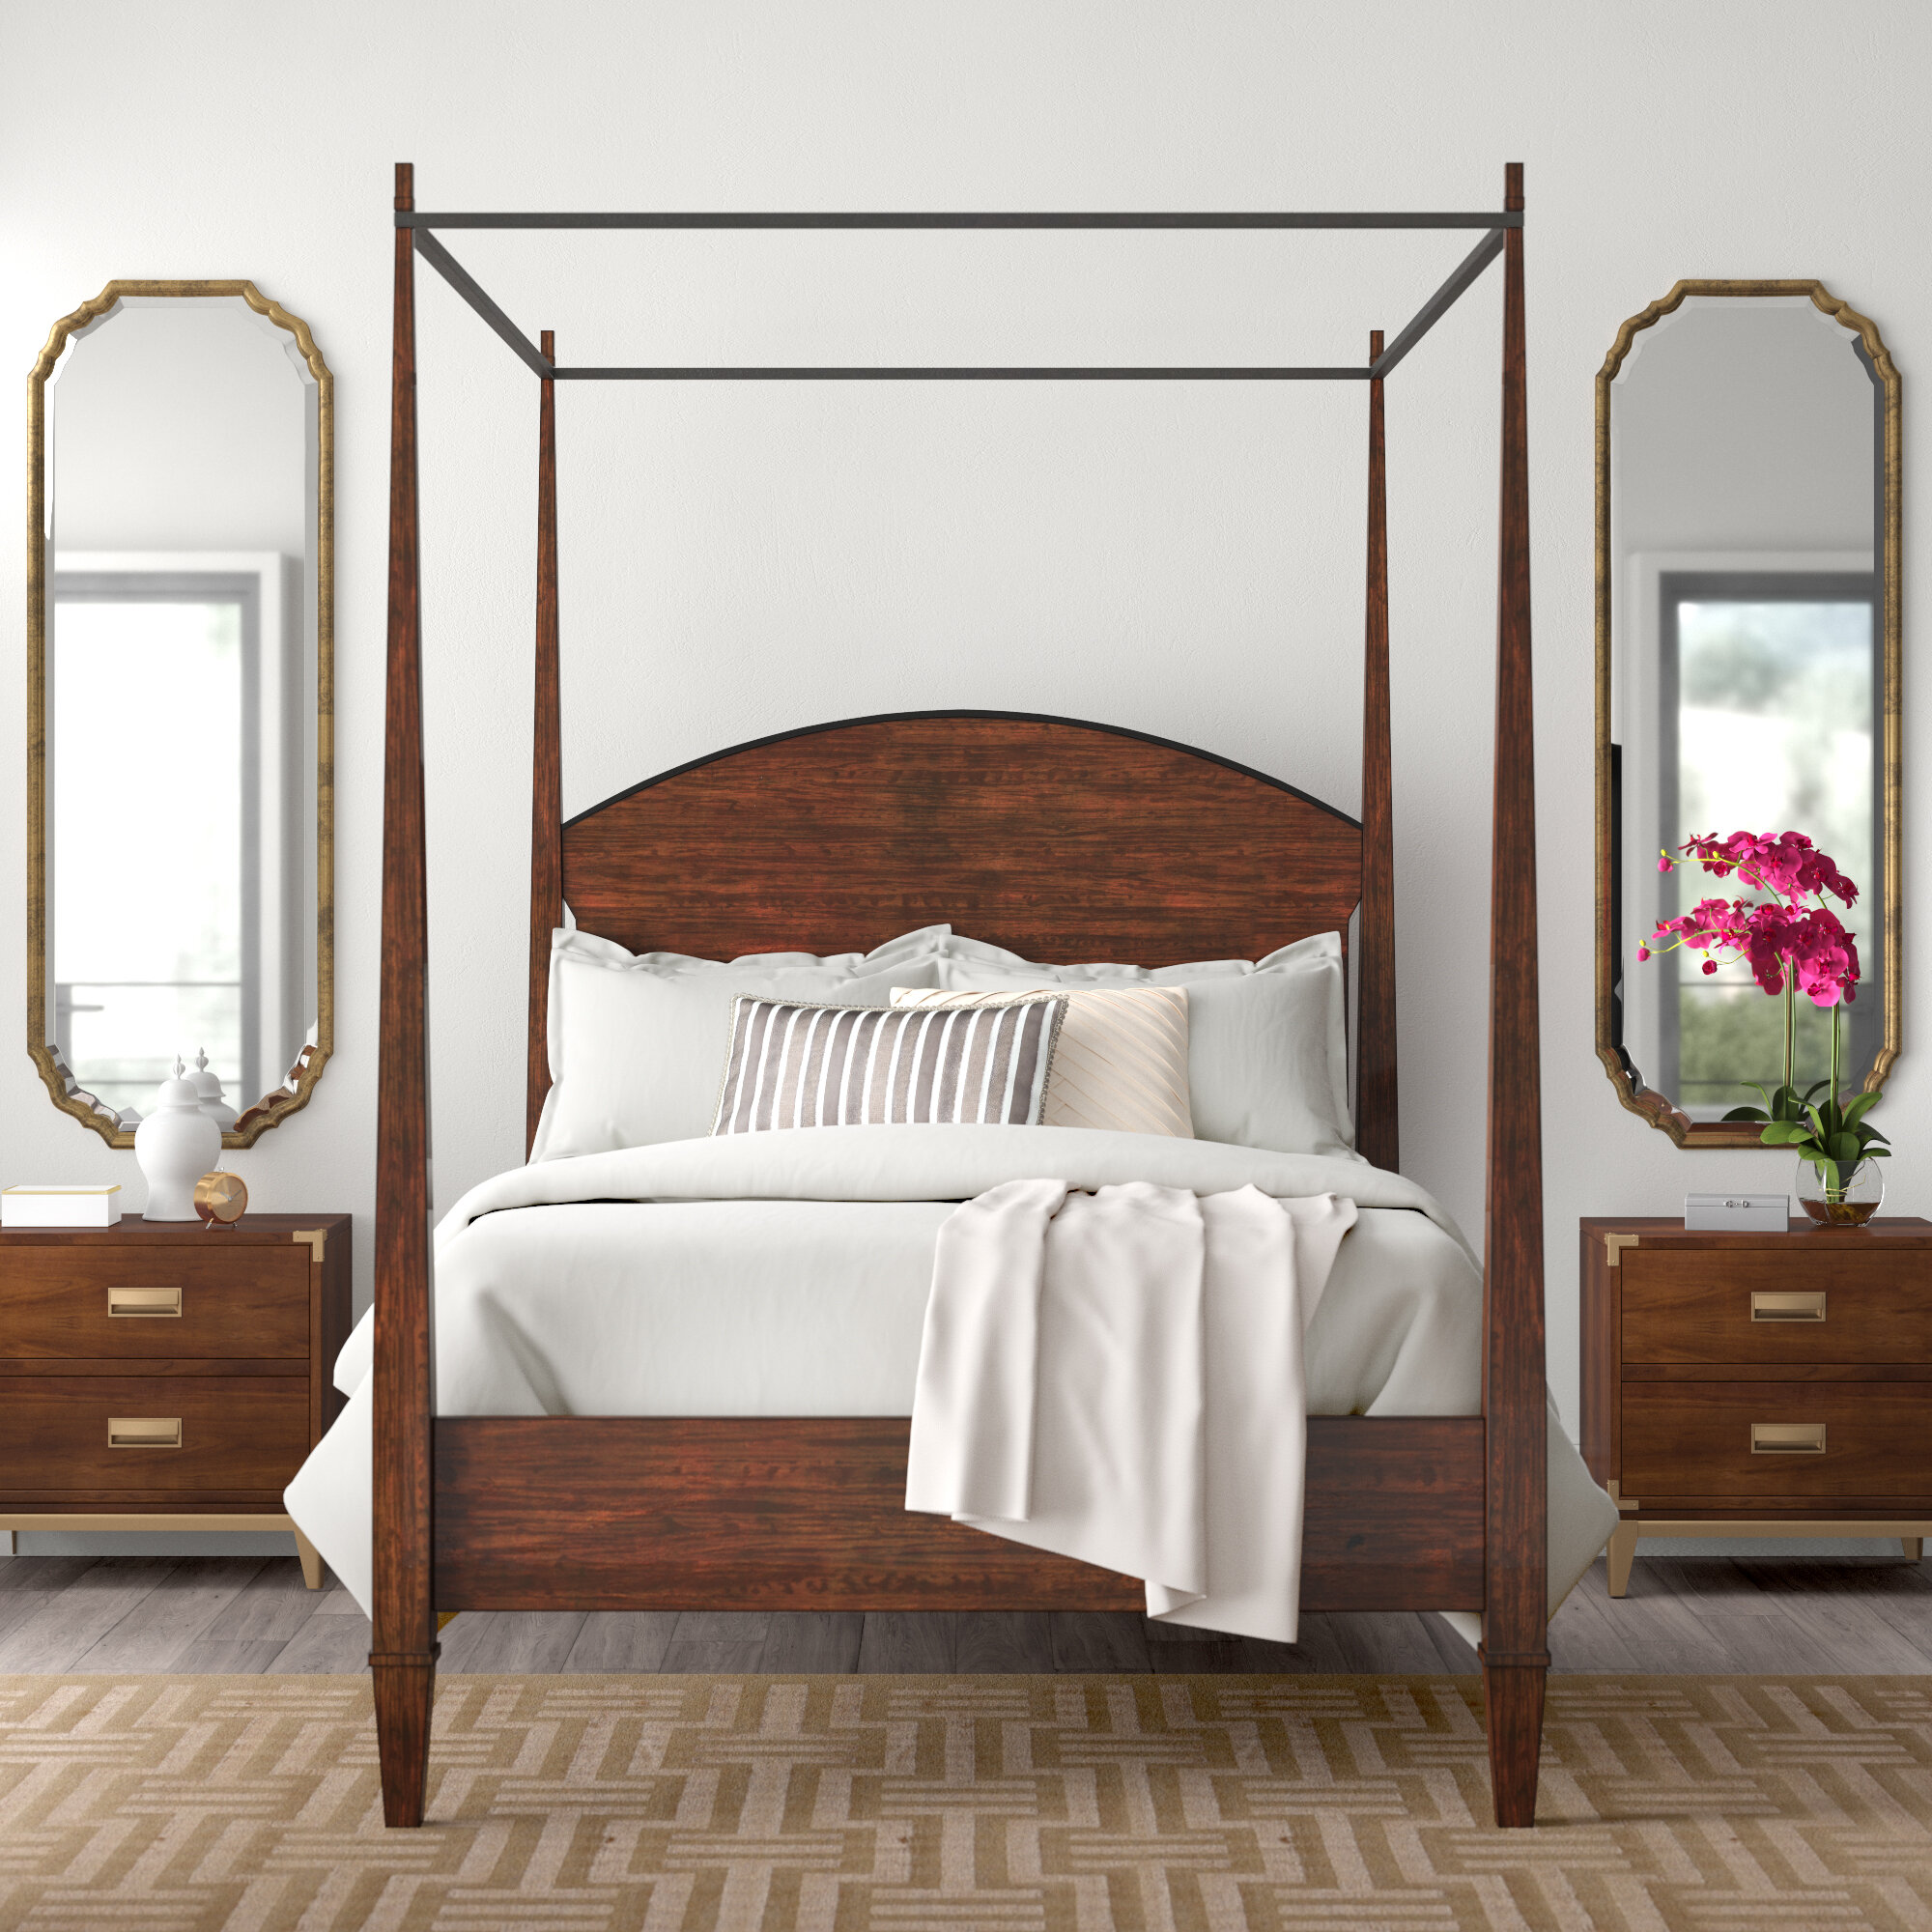 Image of: Canopy Rustic Beds You Ll Love In 2020 Wayfair